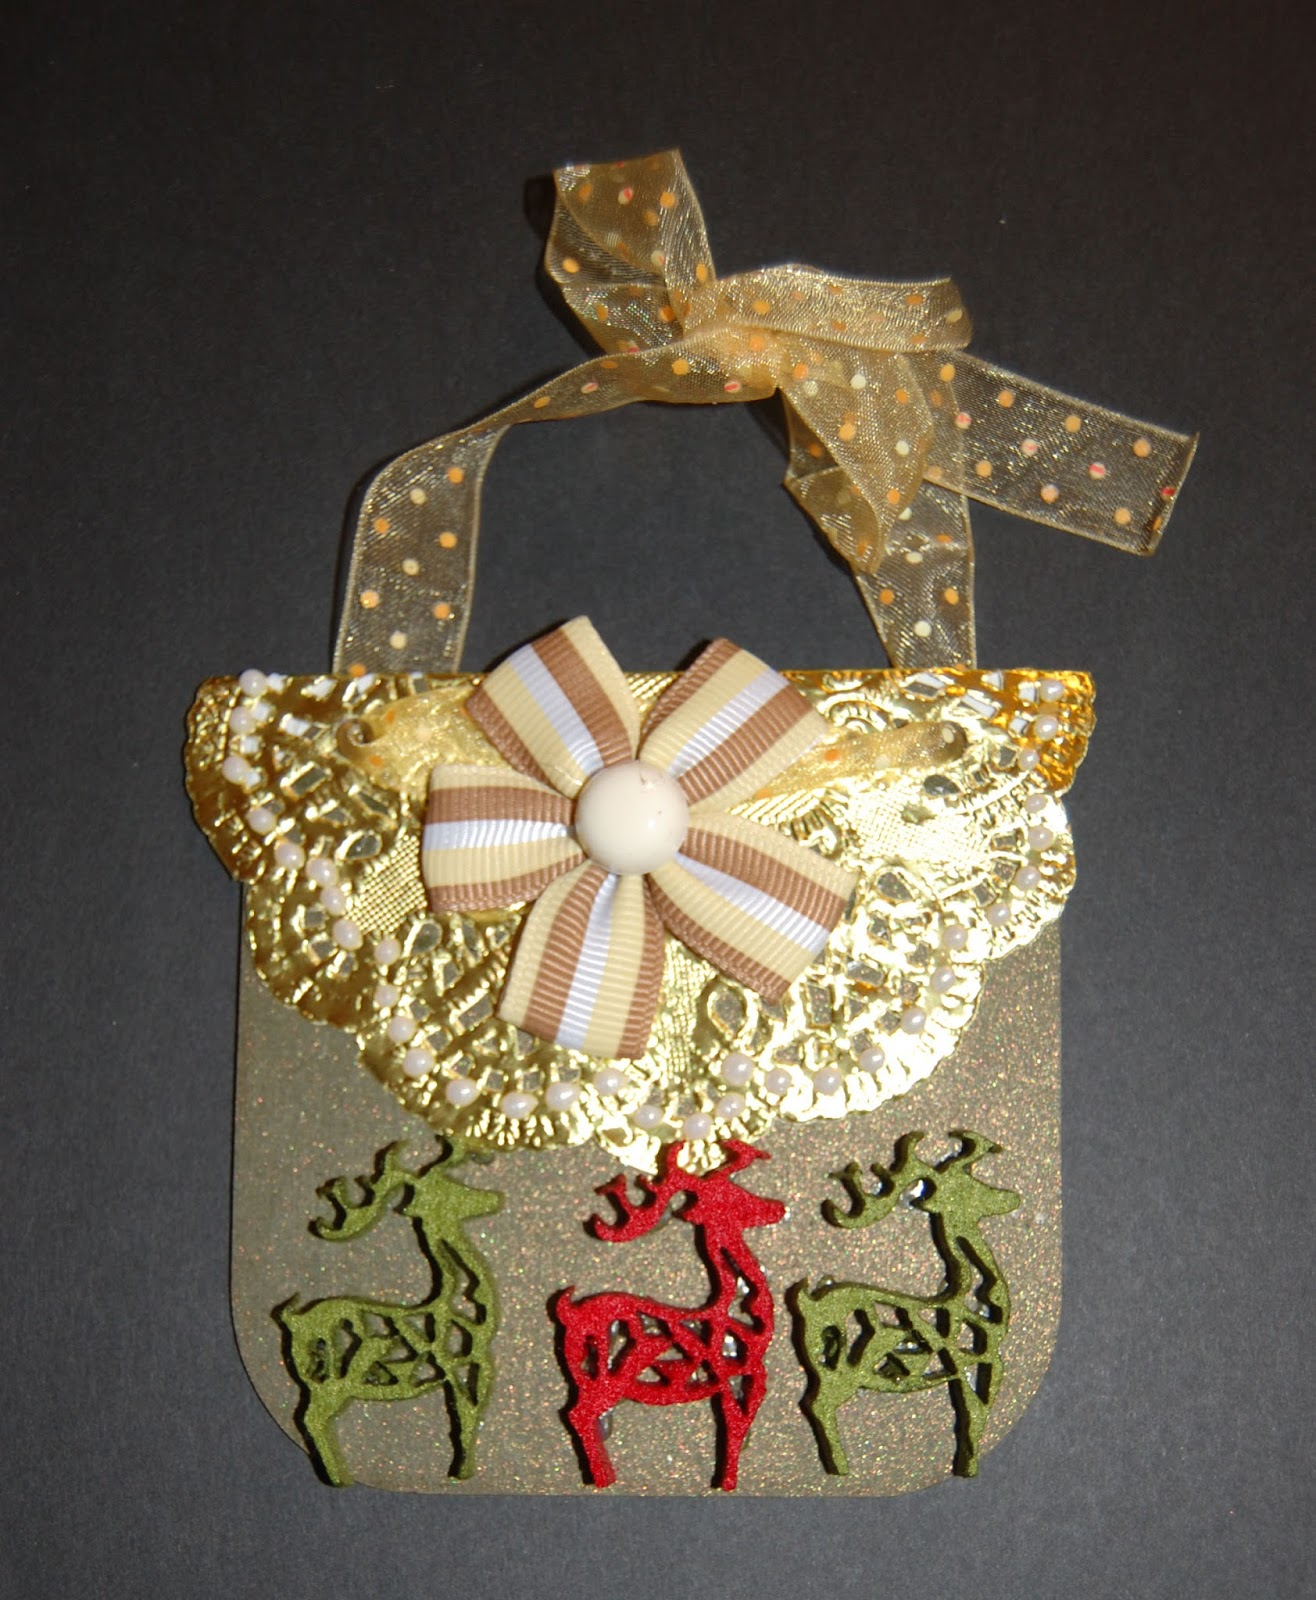 Fripperies butterflies creating ornaments the canvas - Ornament tapete weiay ...